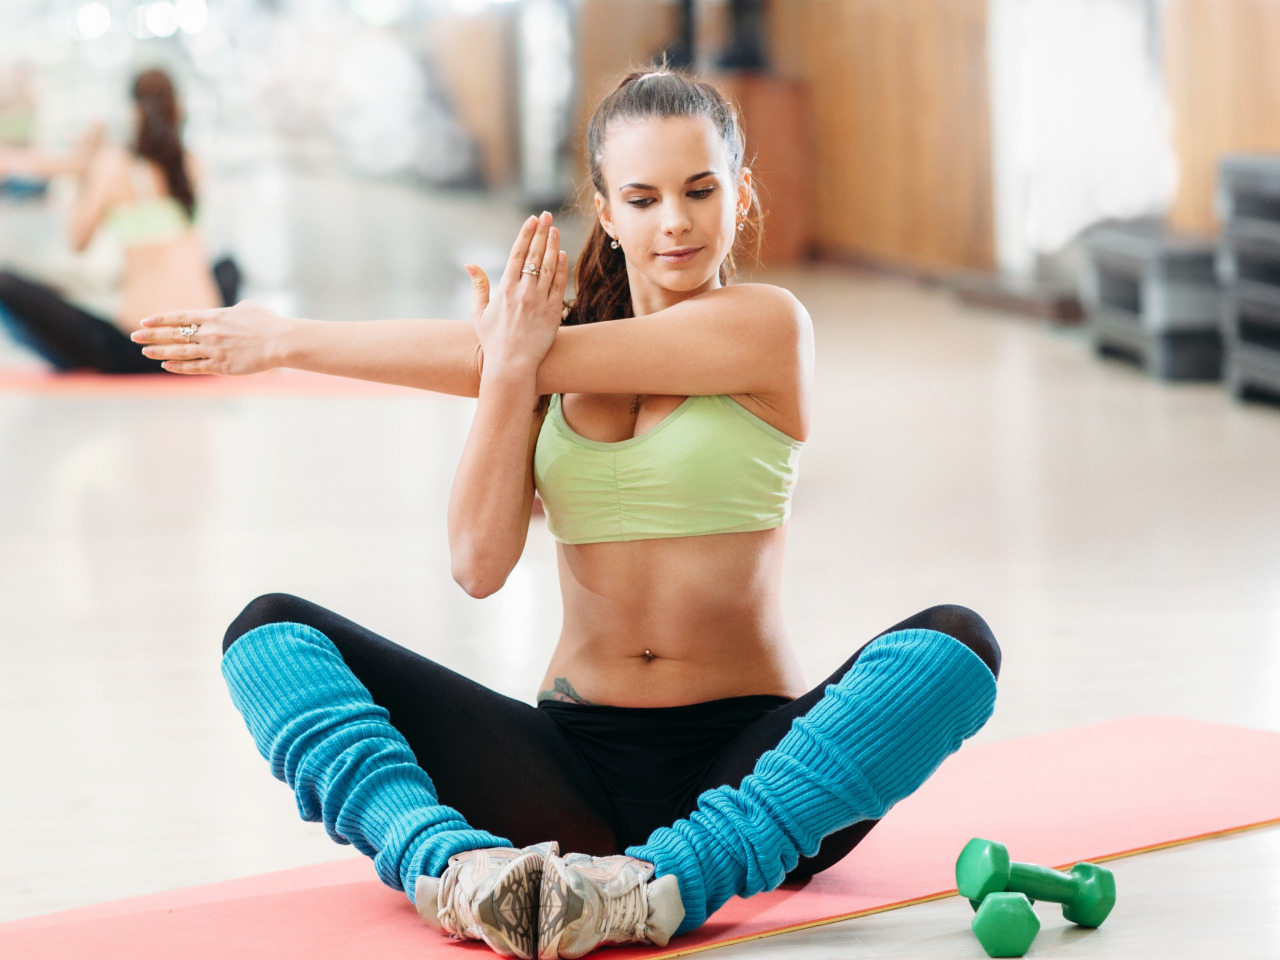 workout-stretching-arms-back-floor-fitness